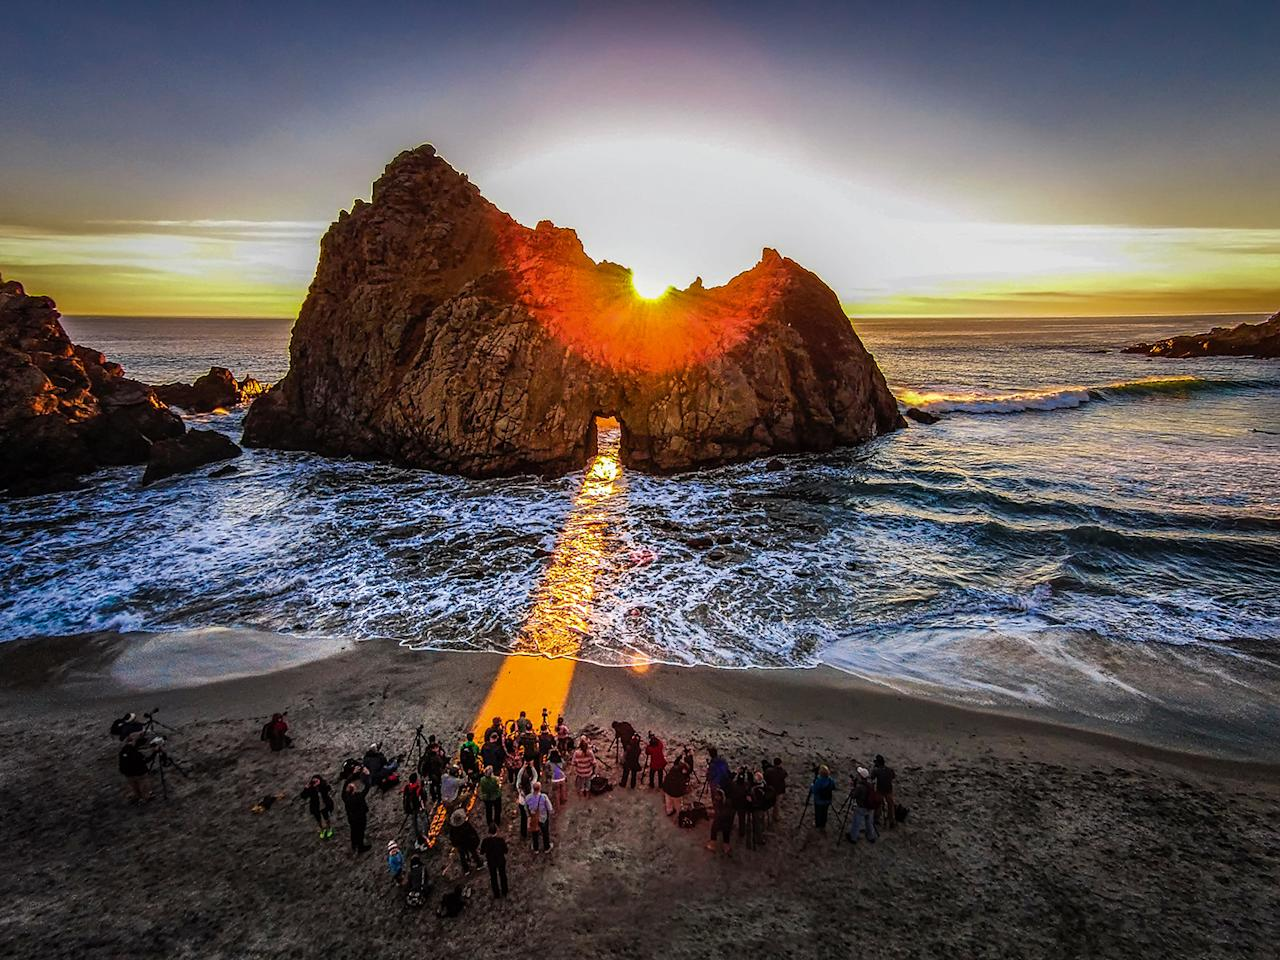 <p>Pfeiffer Beach, Big Sur, Calif., by Romeo Durscher, taken at 492 feet. (Caters News) </p>